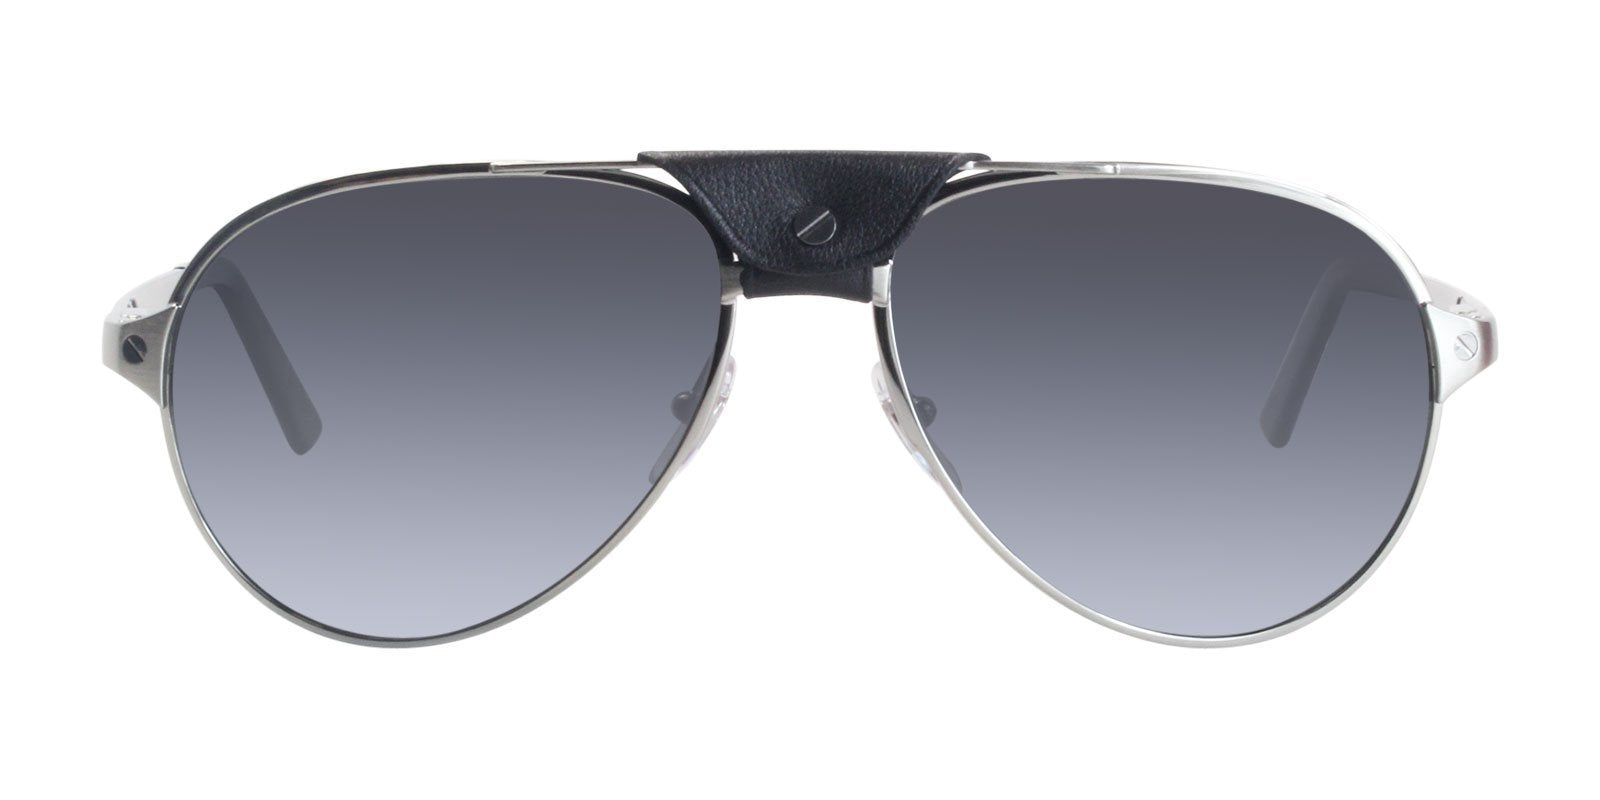 Cartier - CT0034S Shiny Ruthenium - Black Aviator Men Sunglasses - 59mm-Sunglasses-Designer Eyes